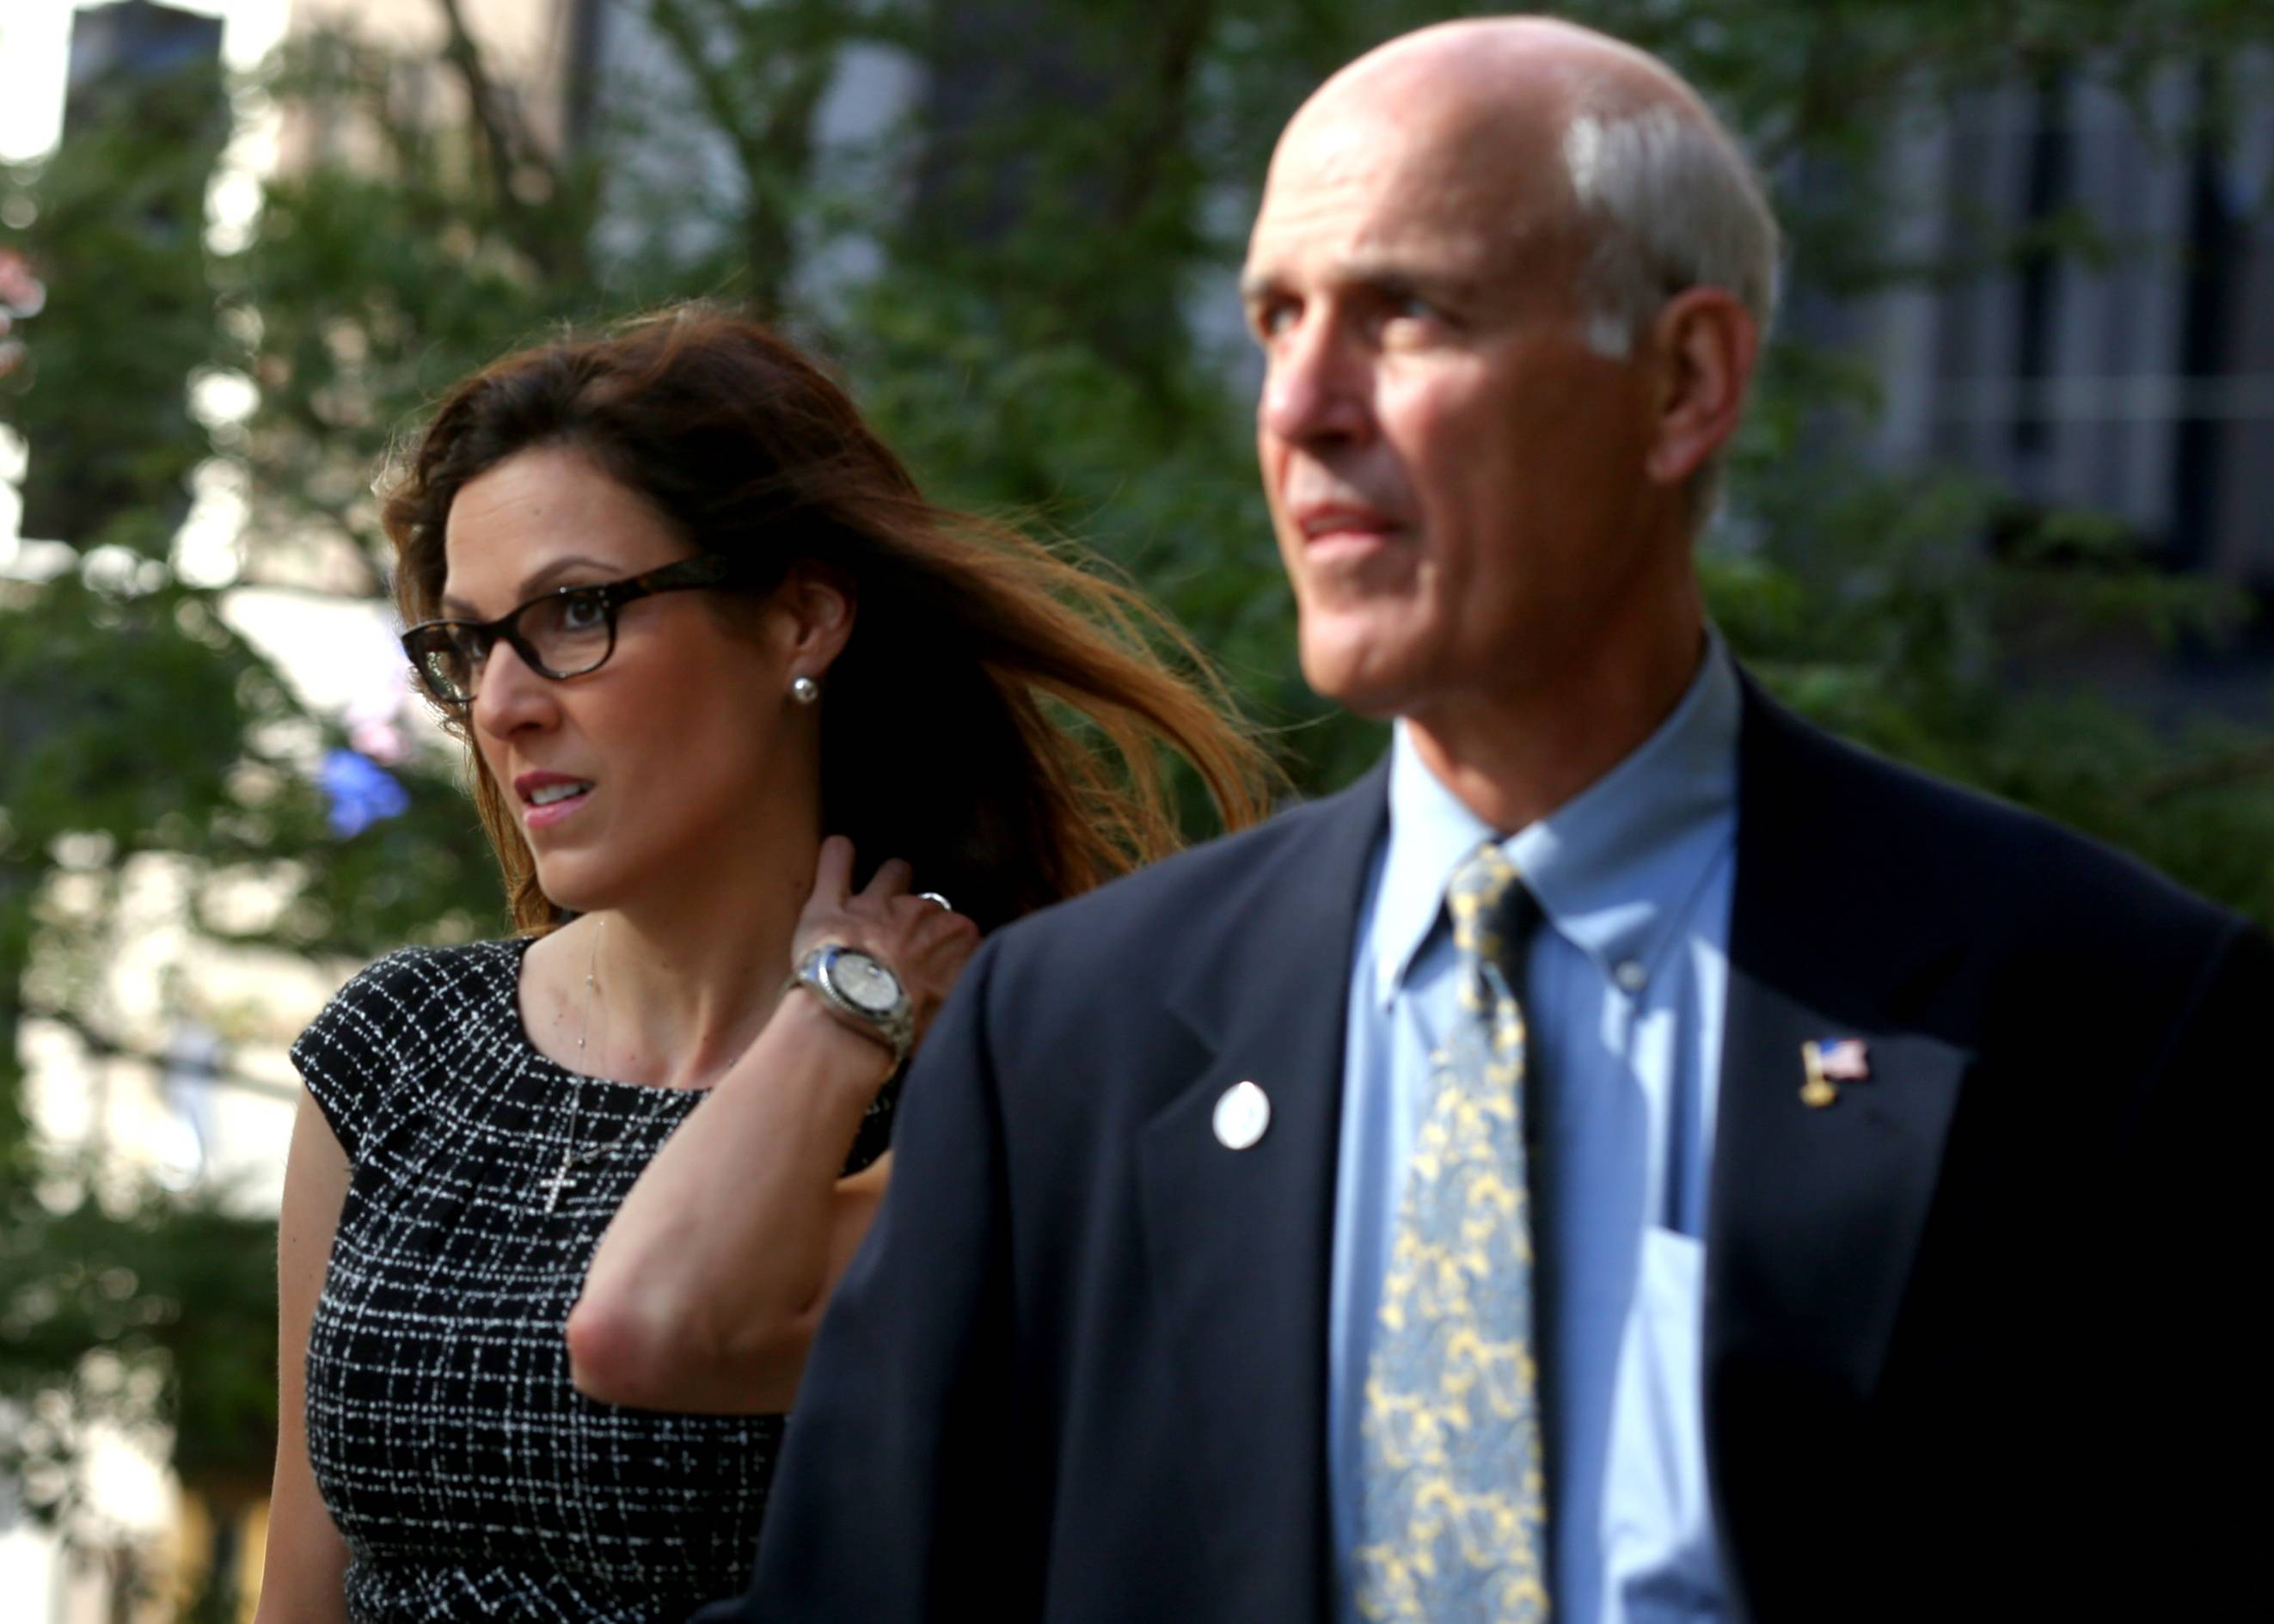 Taya Kyle, widow of late Navy Seal and author Chris Kyle, arrives at court in St. Paul, Minn.